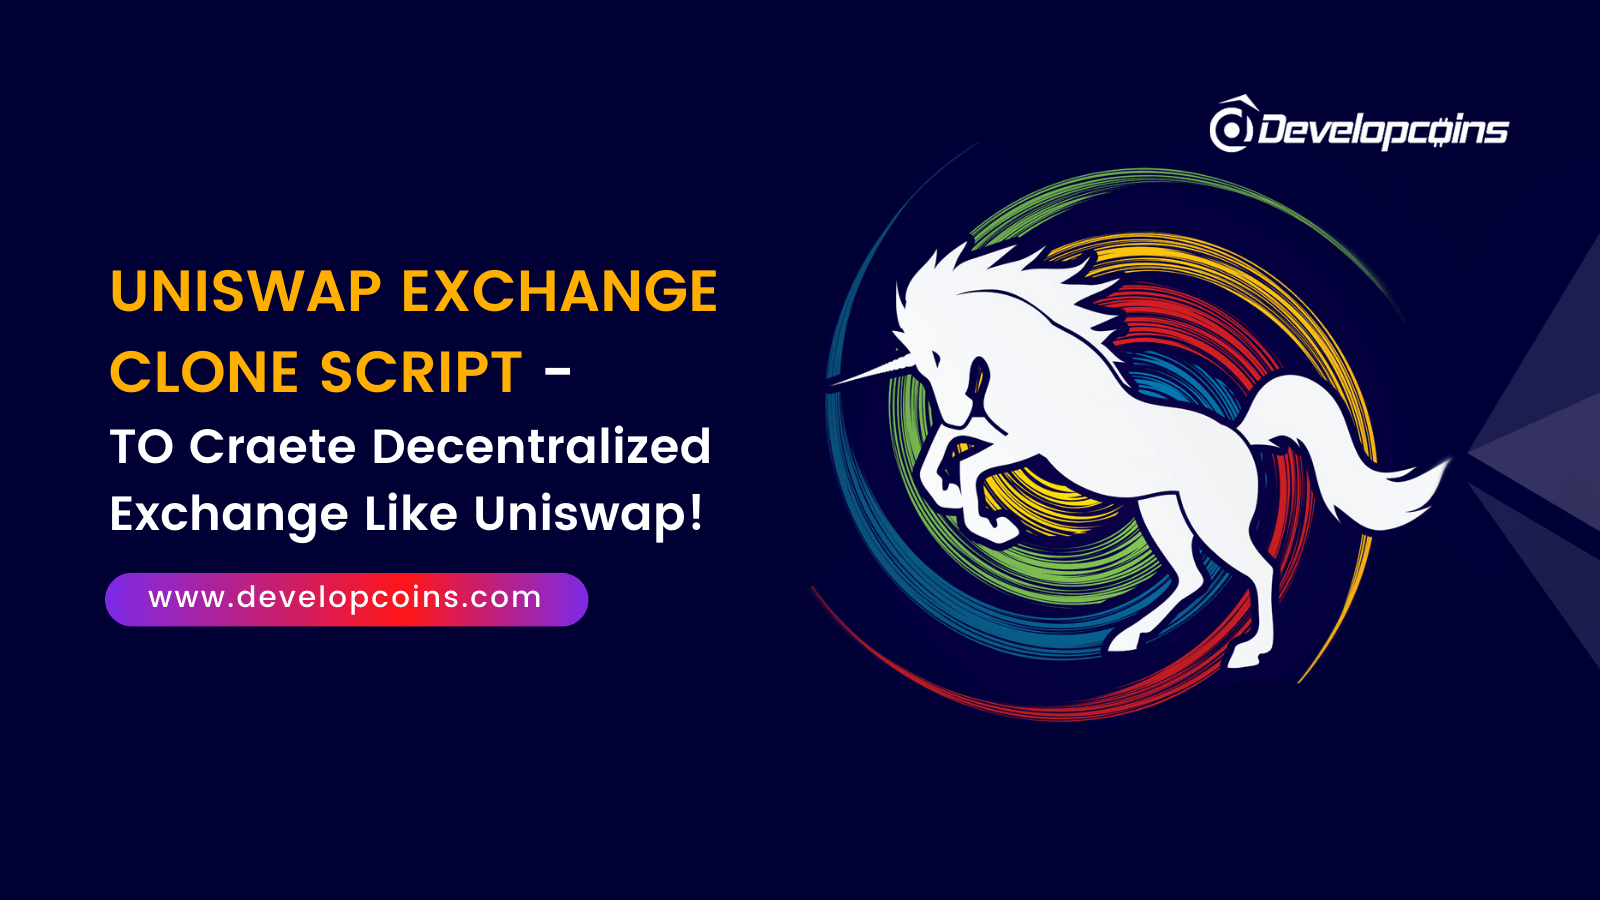 Looking to Build a Decentralized Exchange (DEX) Platform Like Uniswap? Here is the step-by-step guide for Newbies 2021